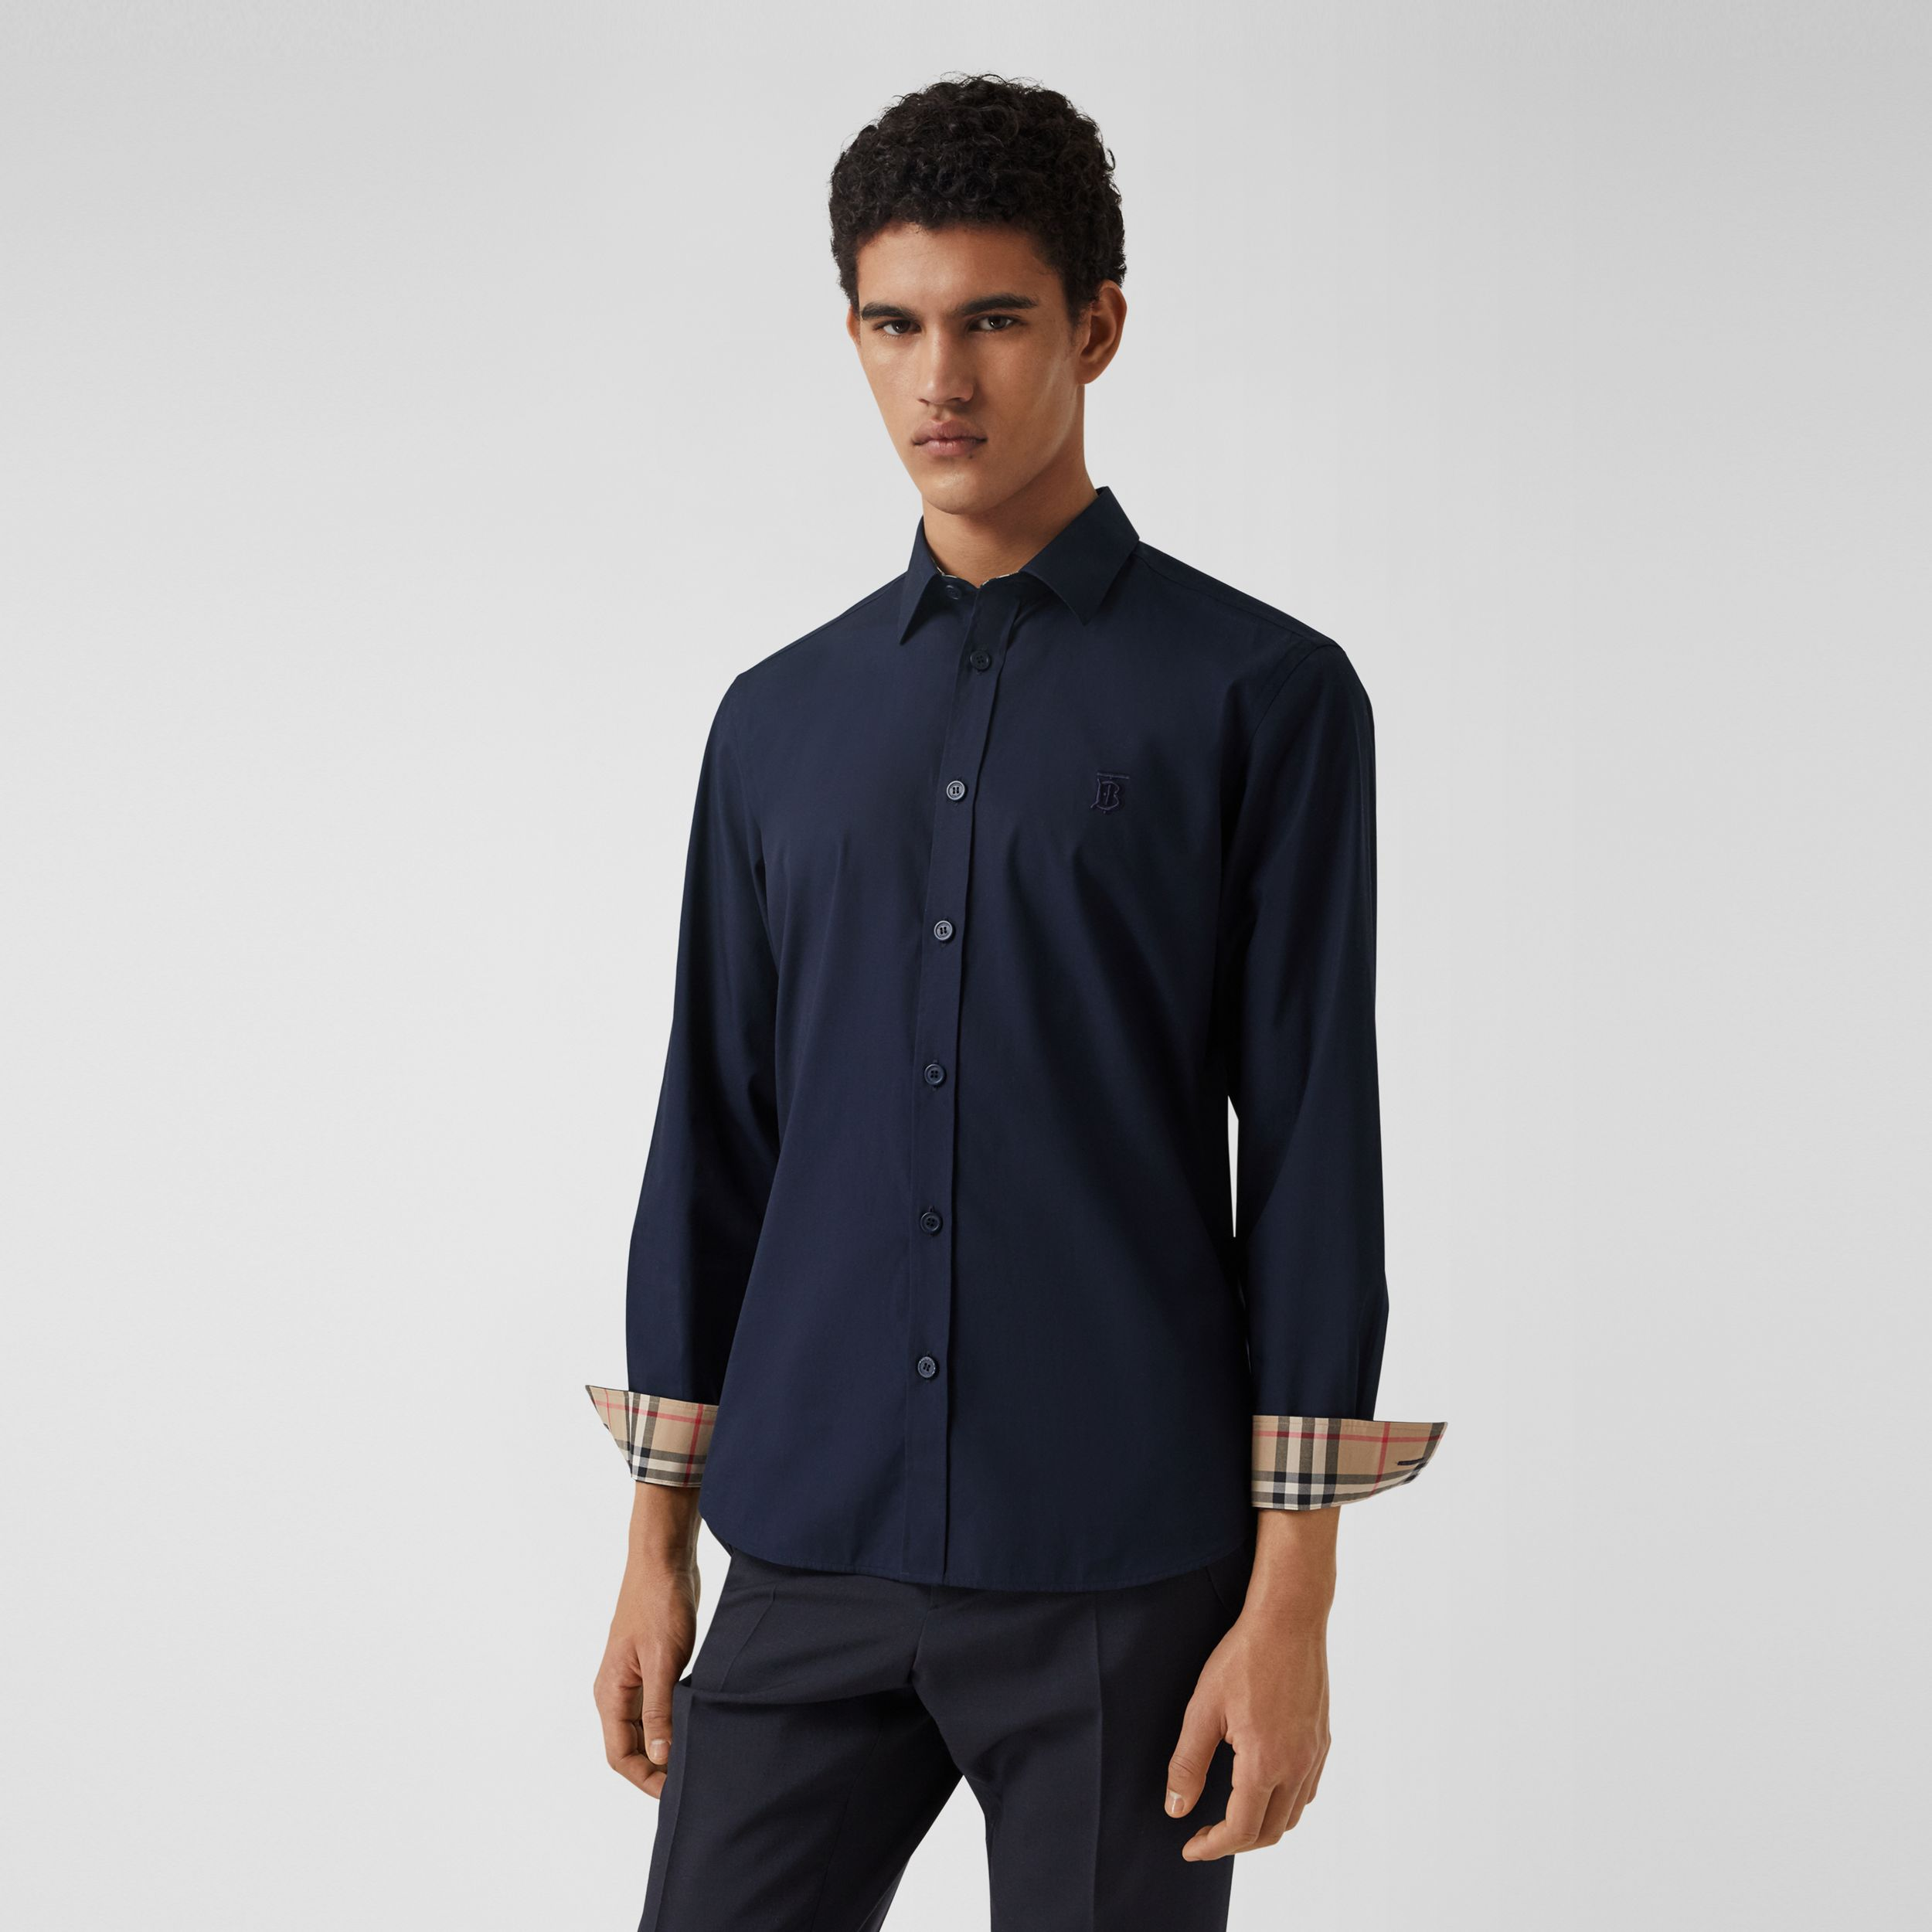 Slim Fit Monogram Motif Stretch Cotton Poplin Shirt in Navy - Men | Burberry - 1